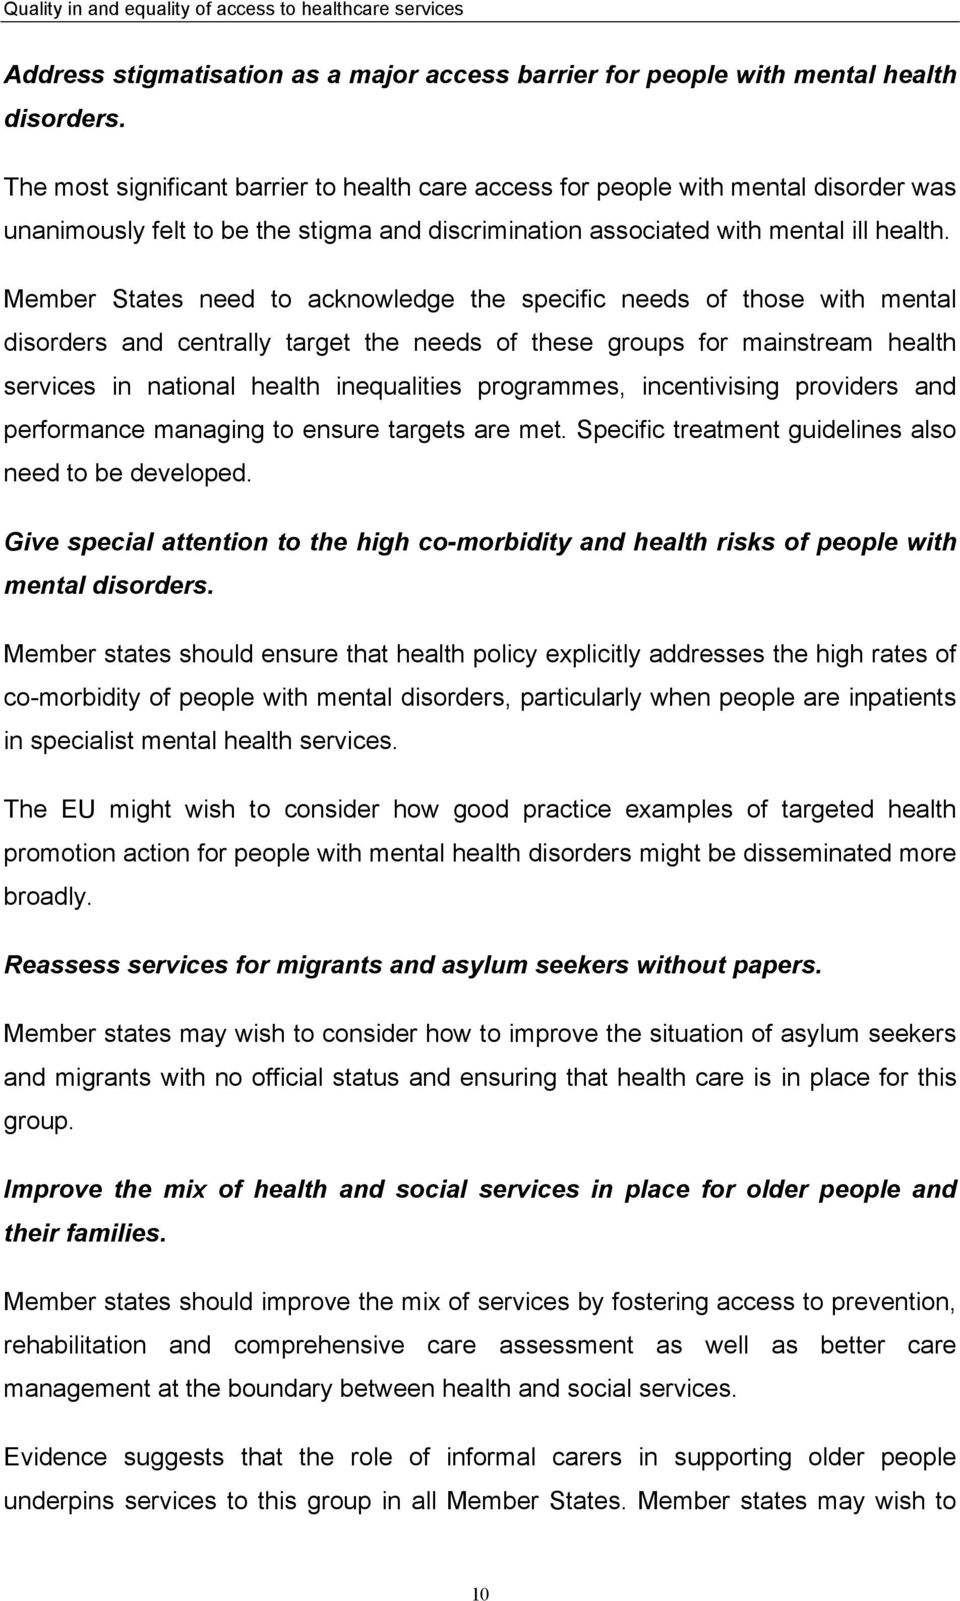 Member States need to acknowledge the specific needs of those with mental disorders and centrally target the needs of these groups for mainstream health services in national health inequalities